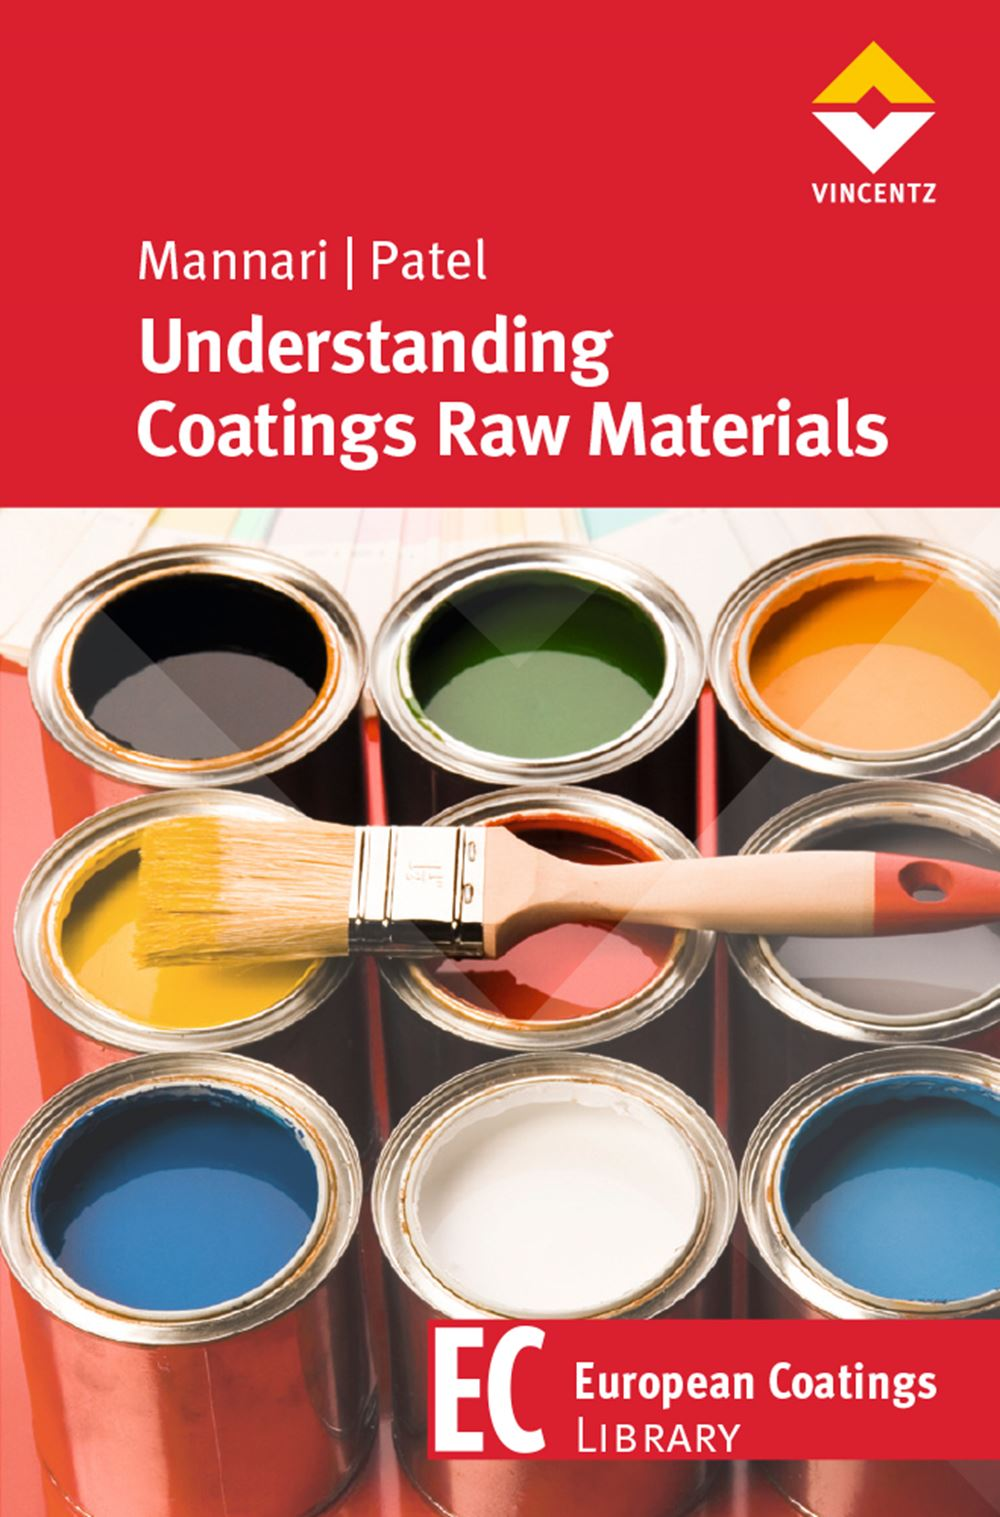 EC Library Understanding Coatings Raw Materials